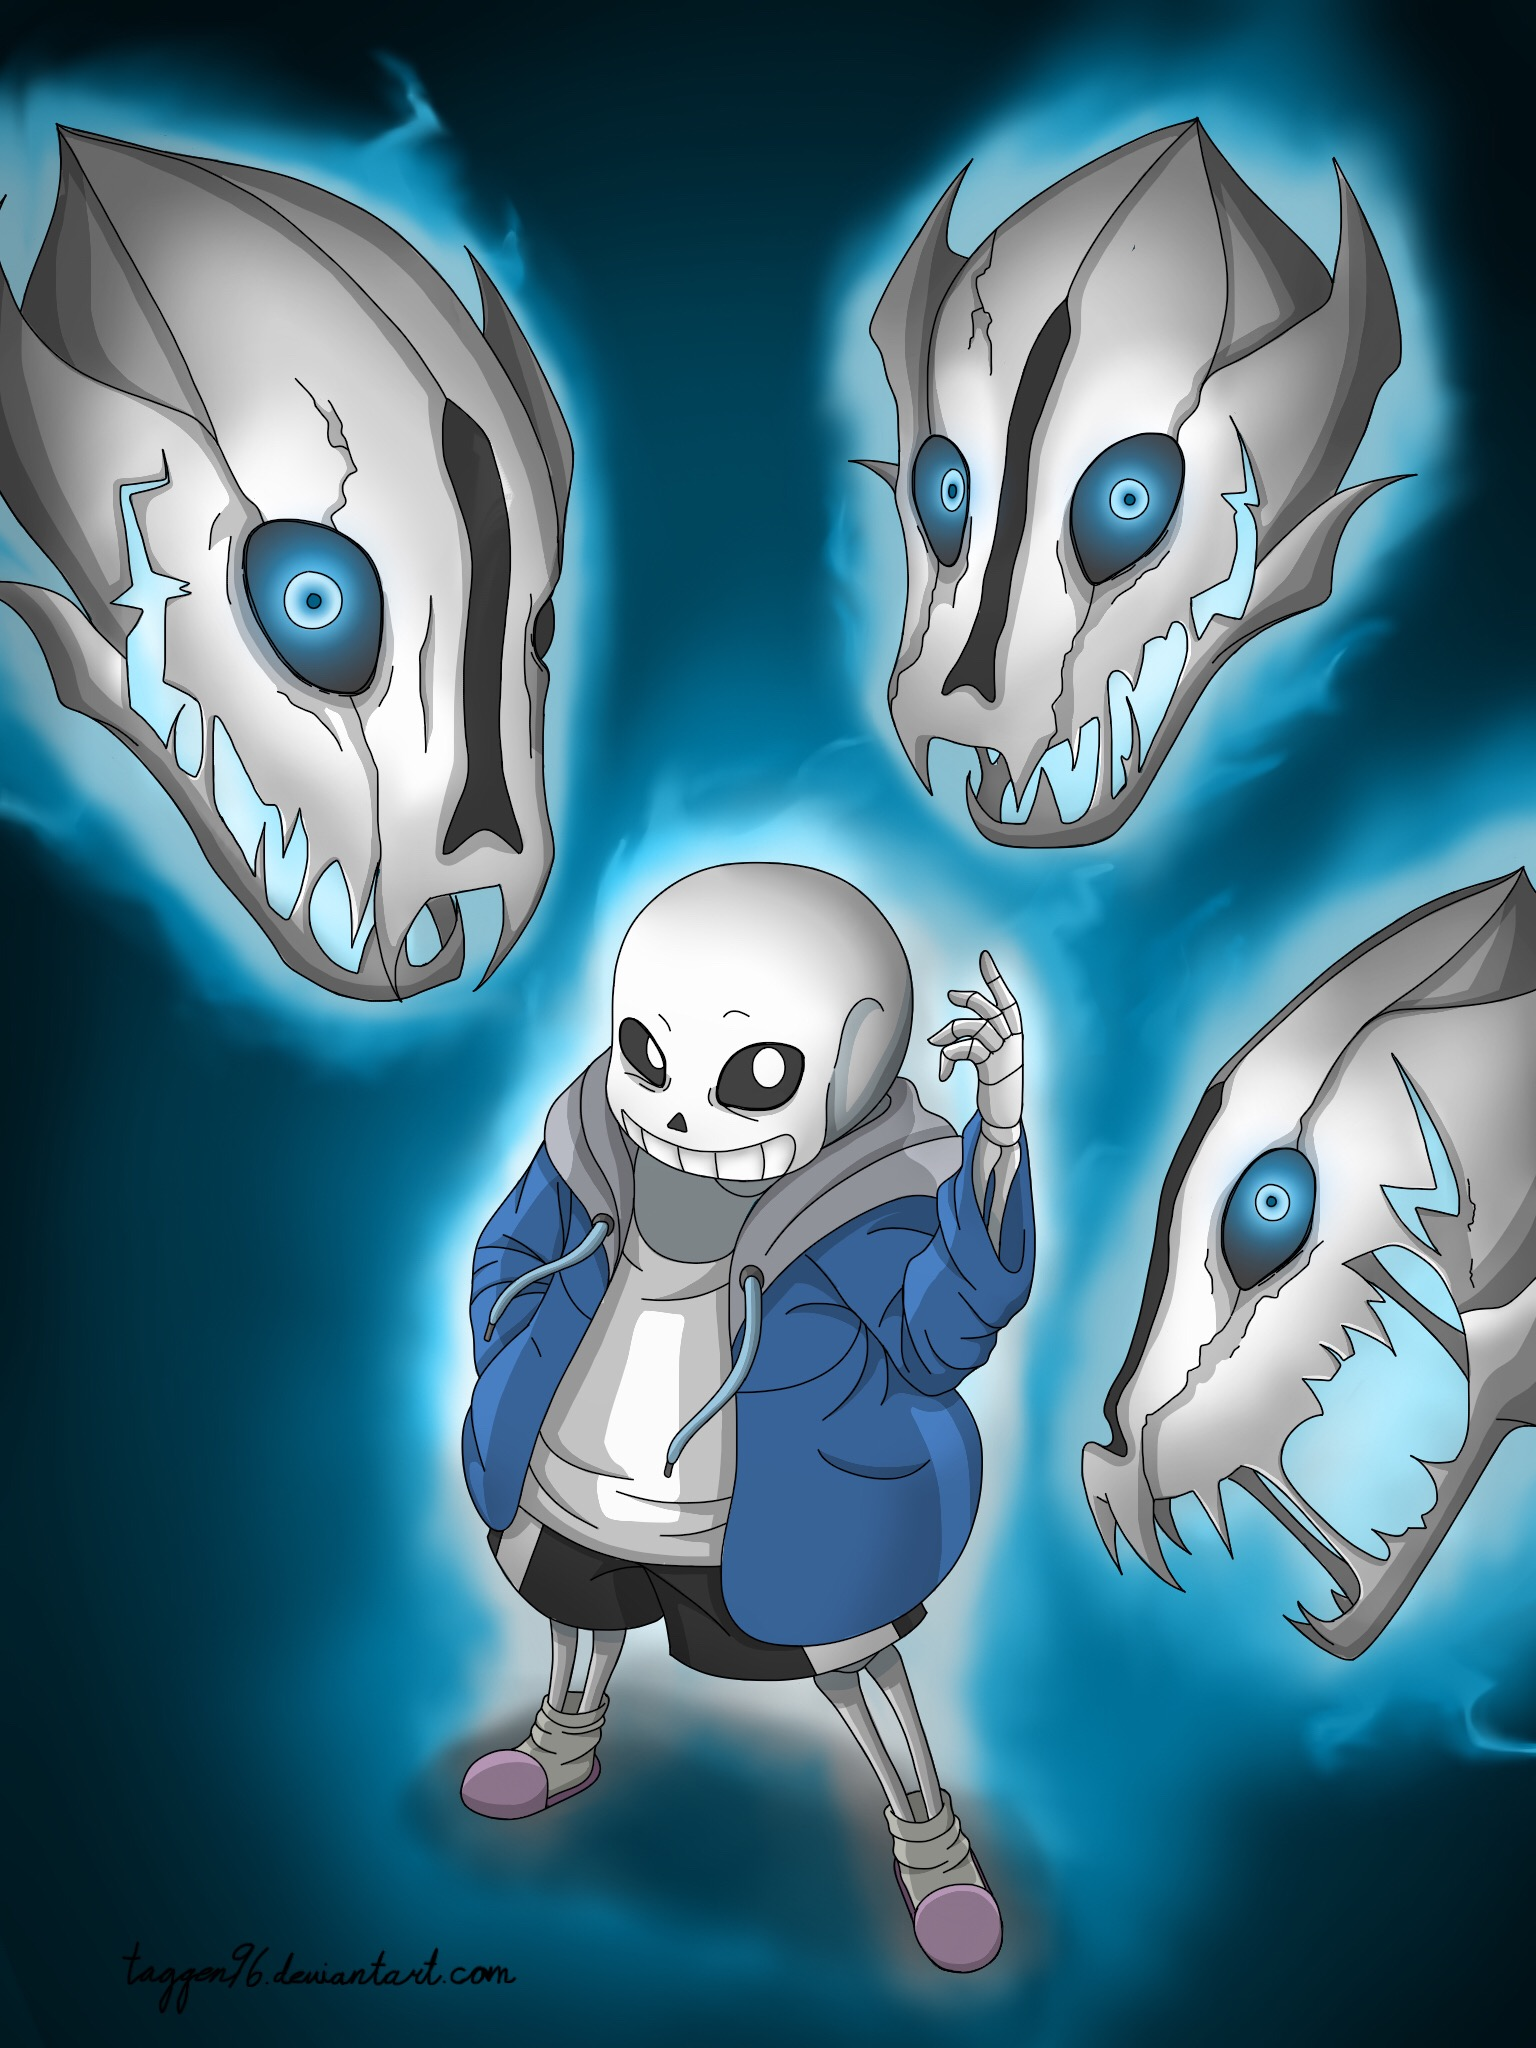 (Art trade) Sans with his gaster blasters by taggen96